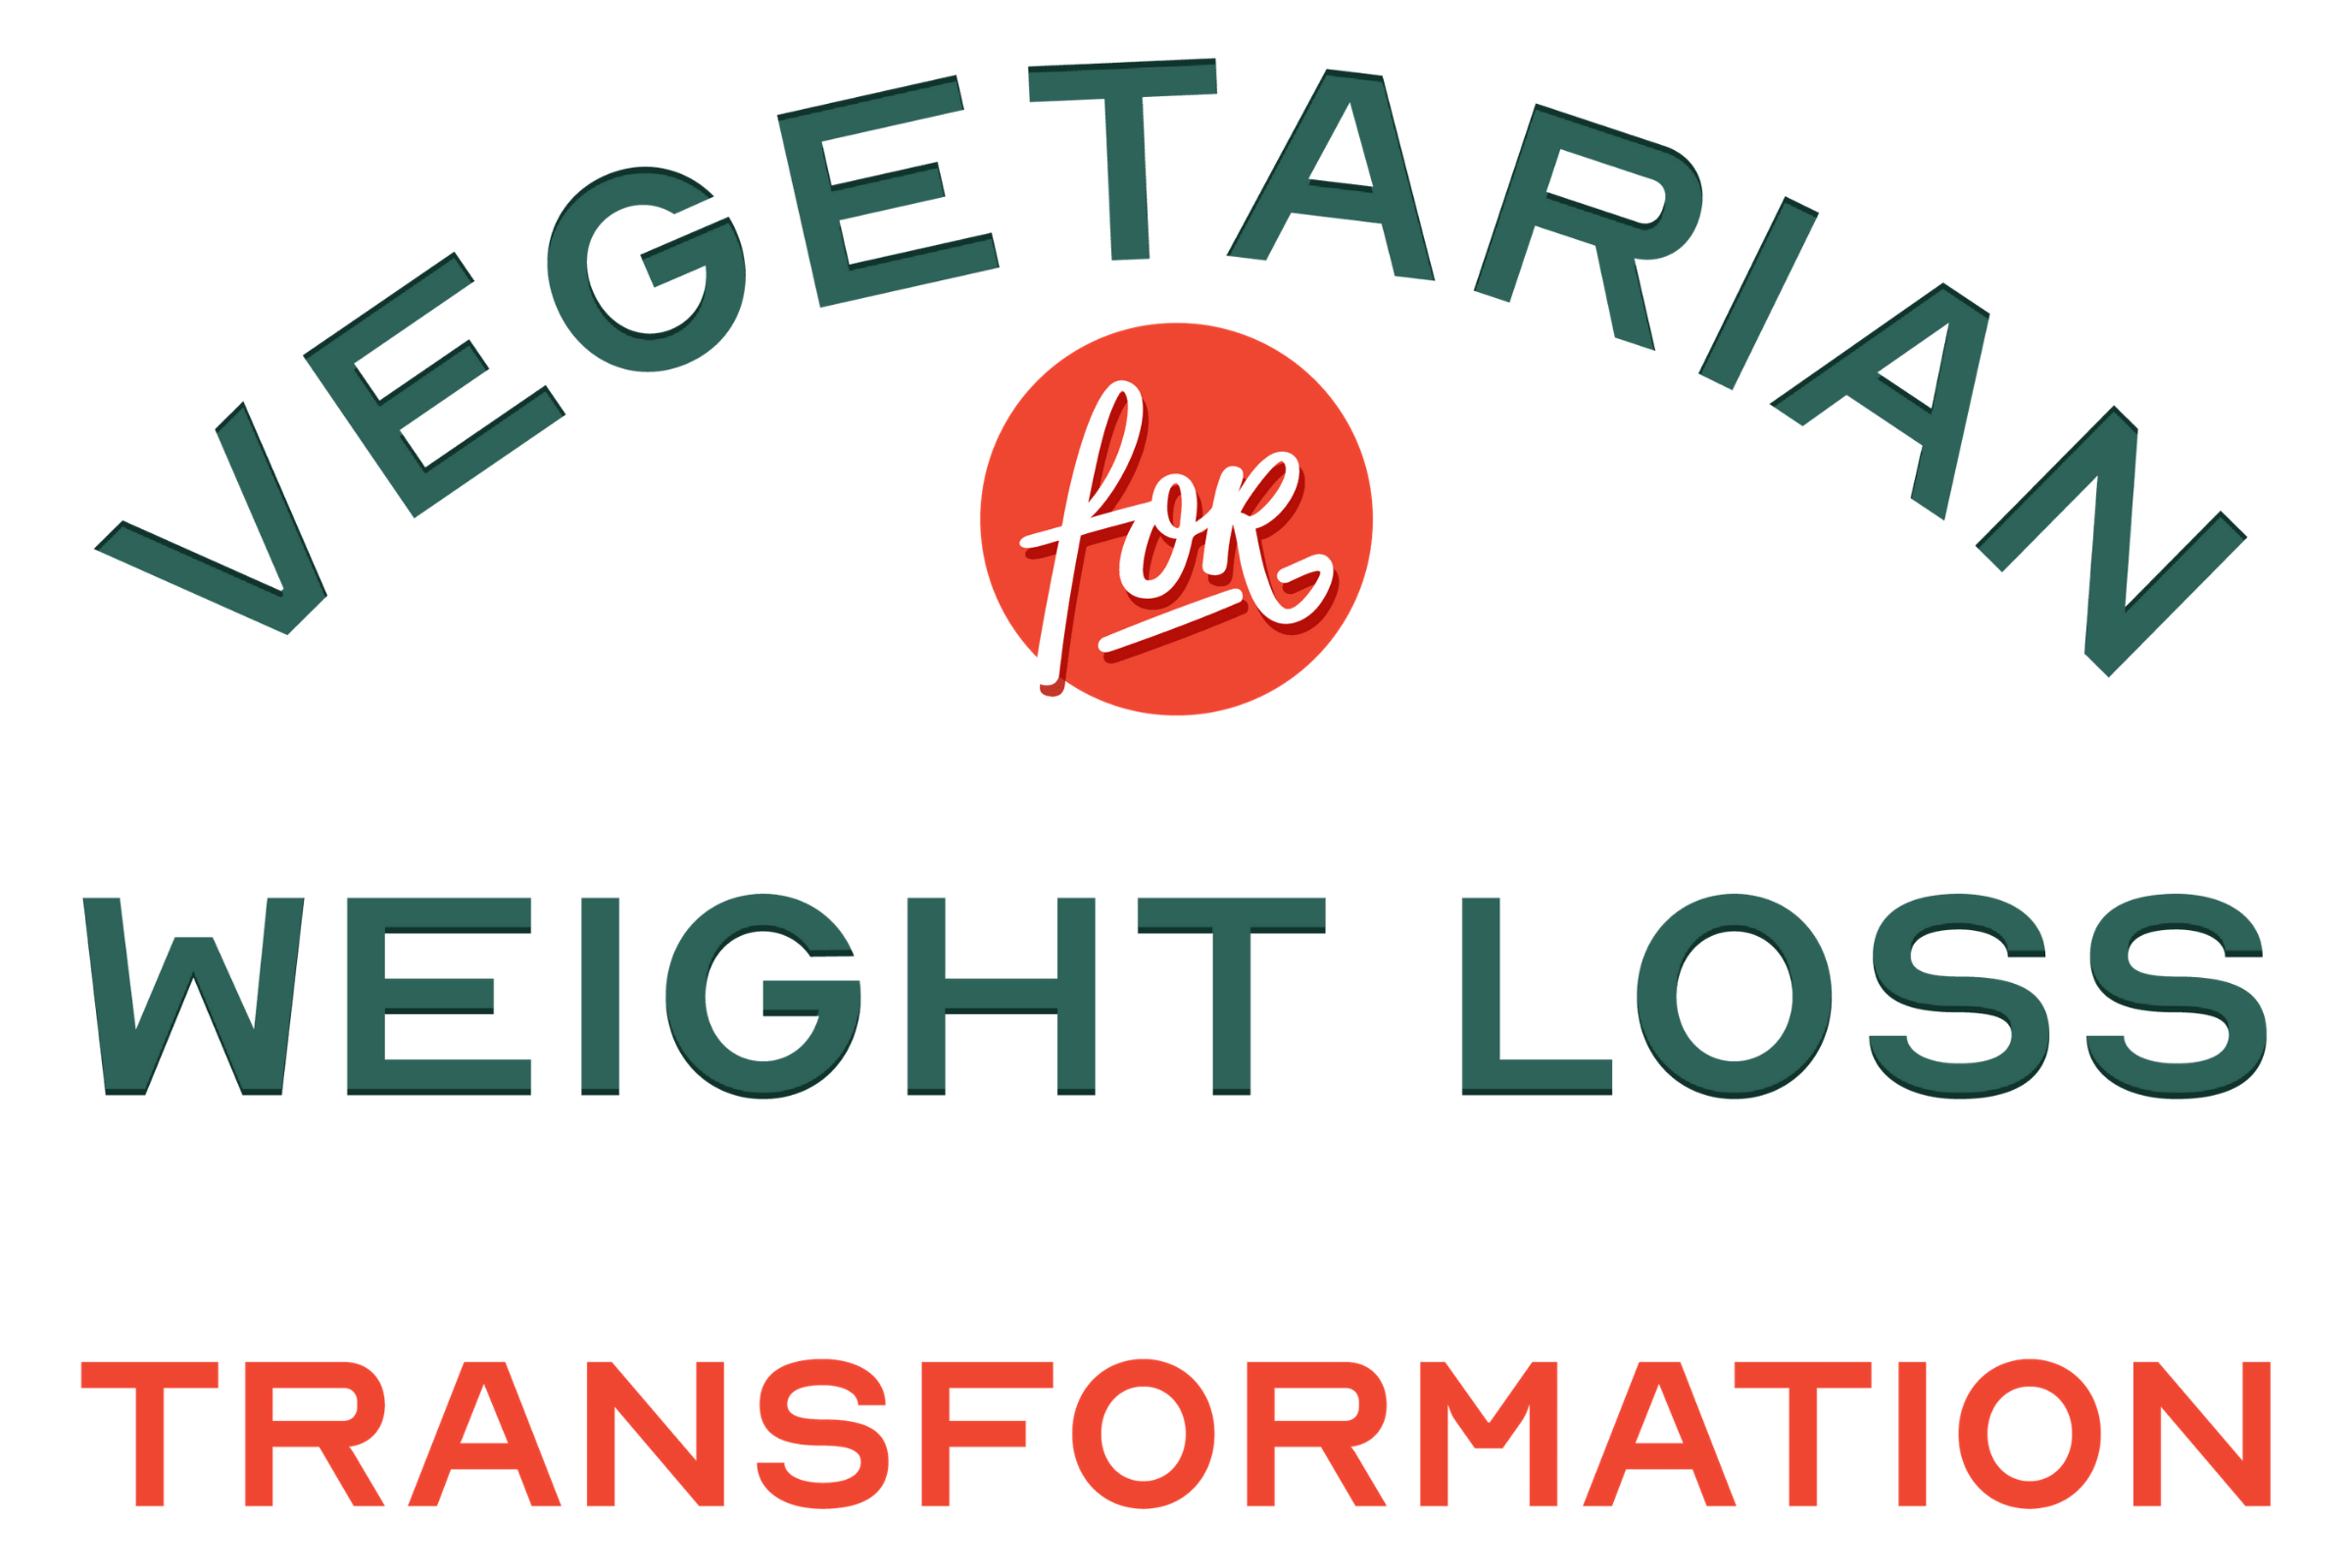 vegetarian for weight loss transformation